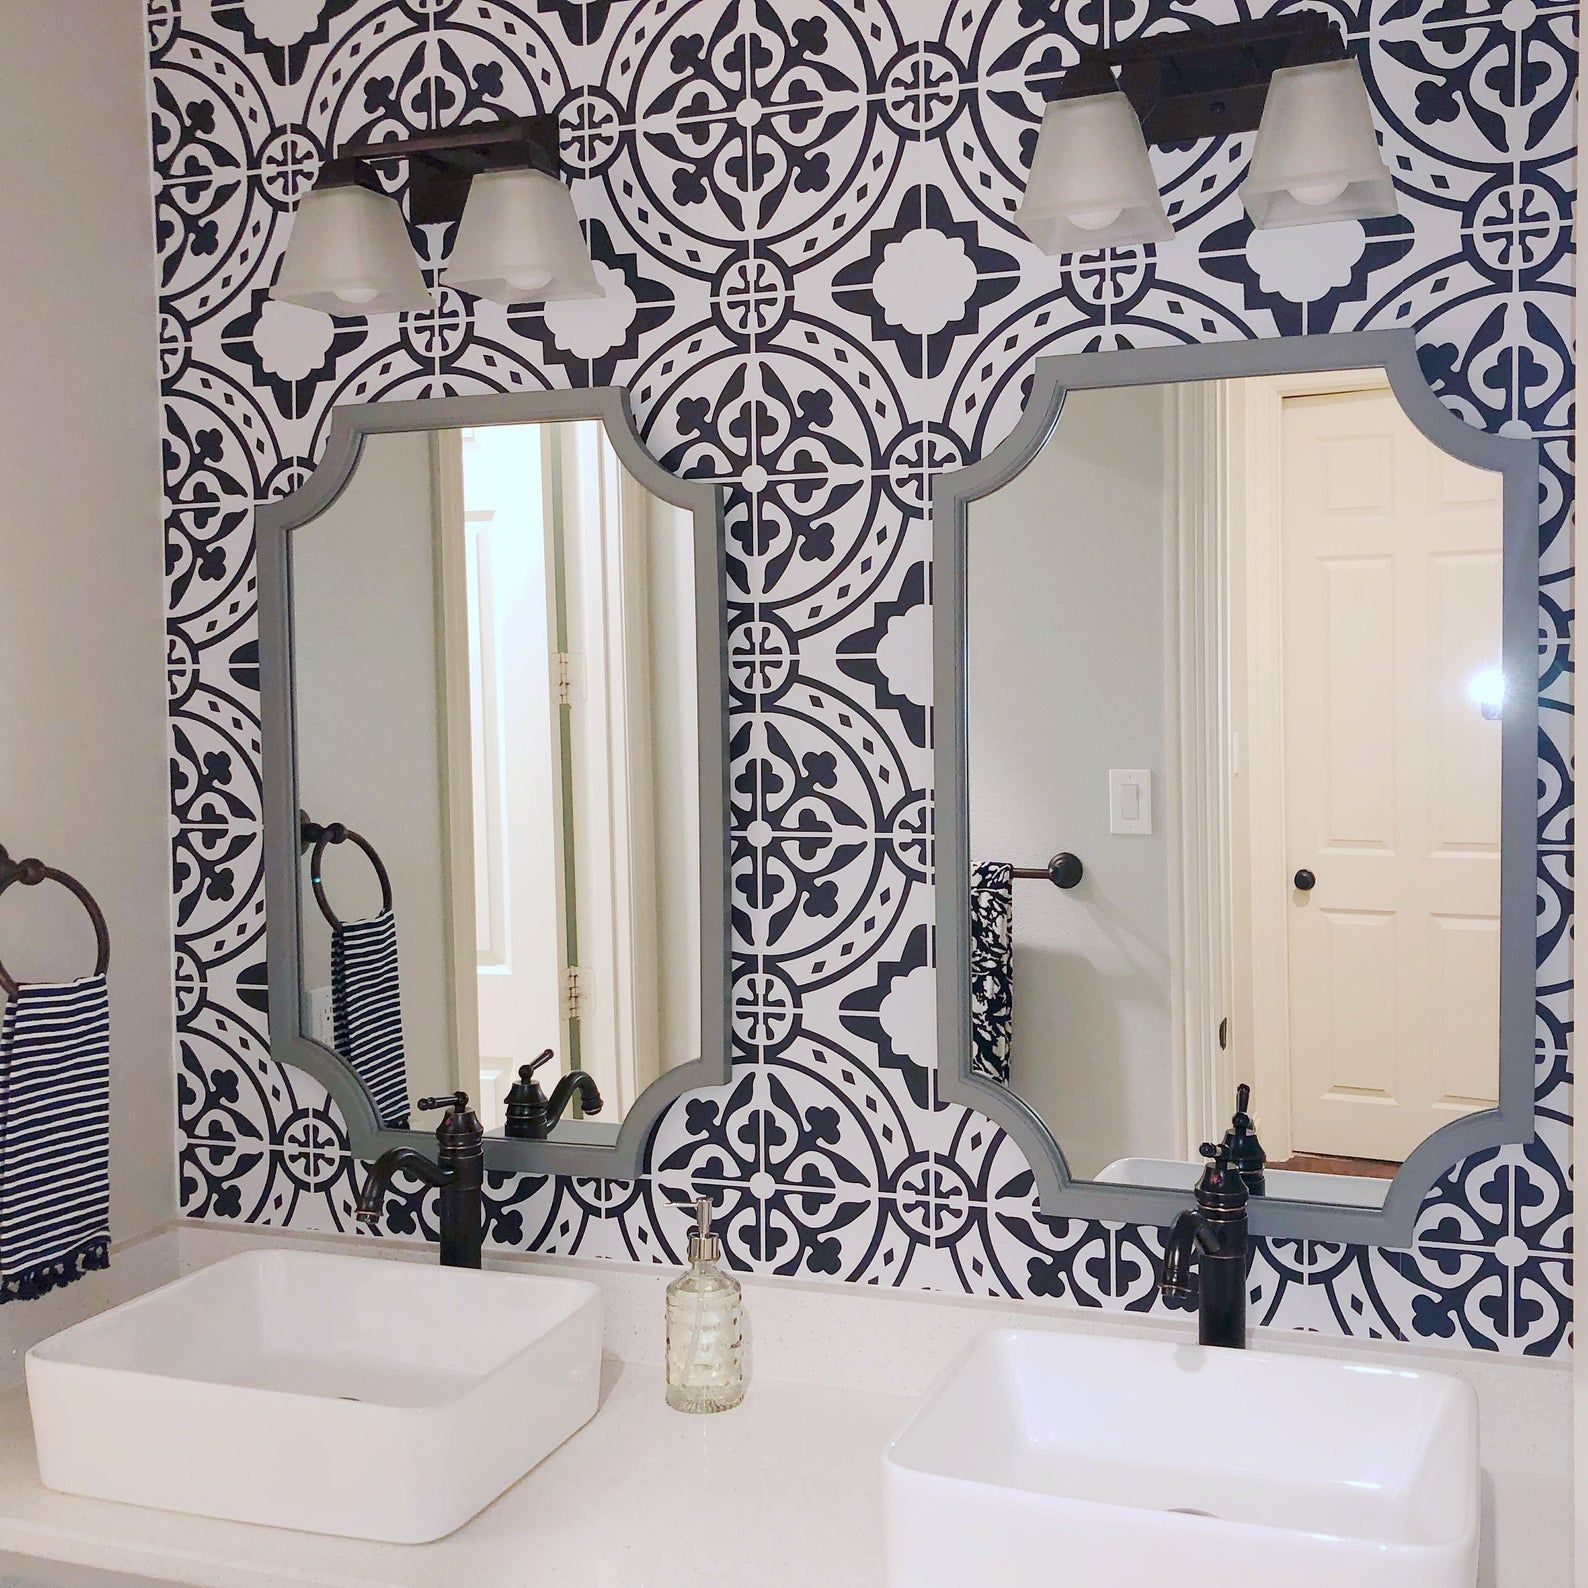 Moroccan Tile Peel And Stick Wallpaper Removable Wallpaper Etsy In 2020 Peel And Stick Wallpaper Bathroom Wallpaper Modern Tile Wallpaper